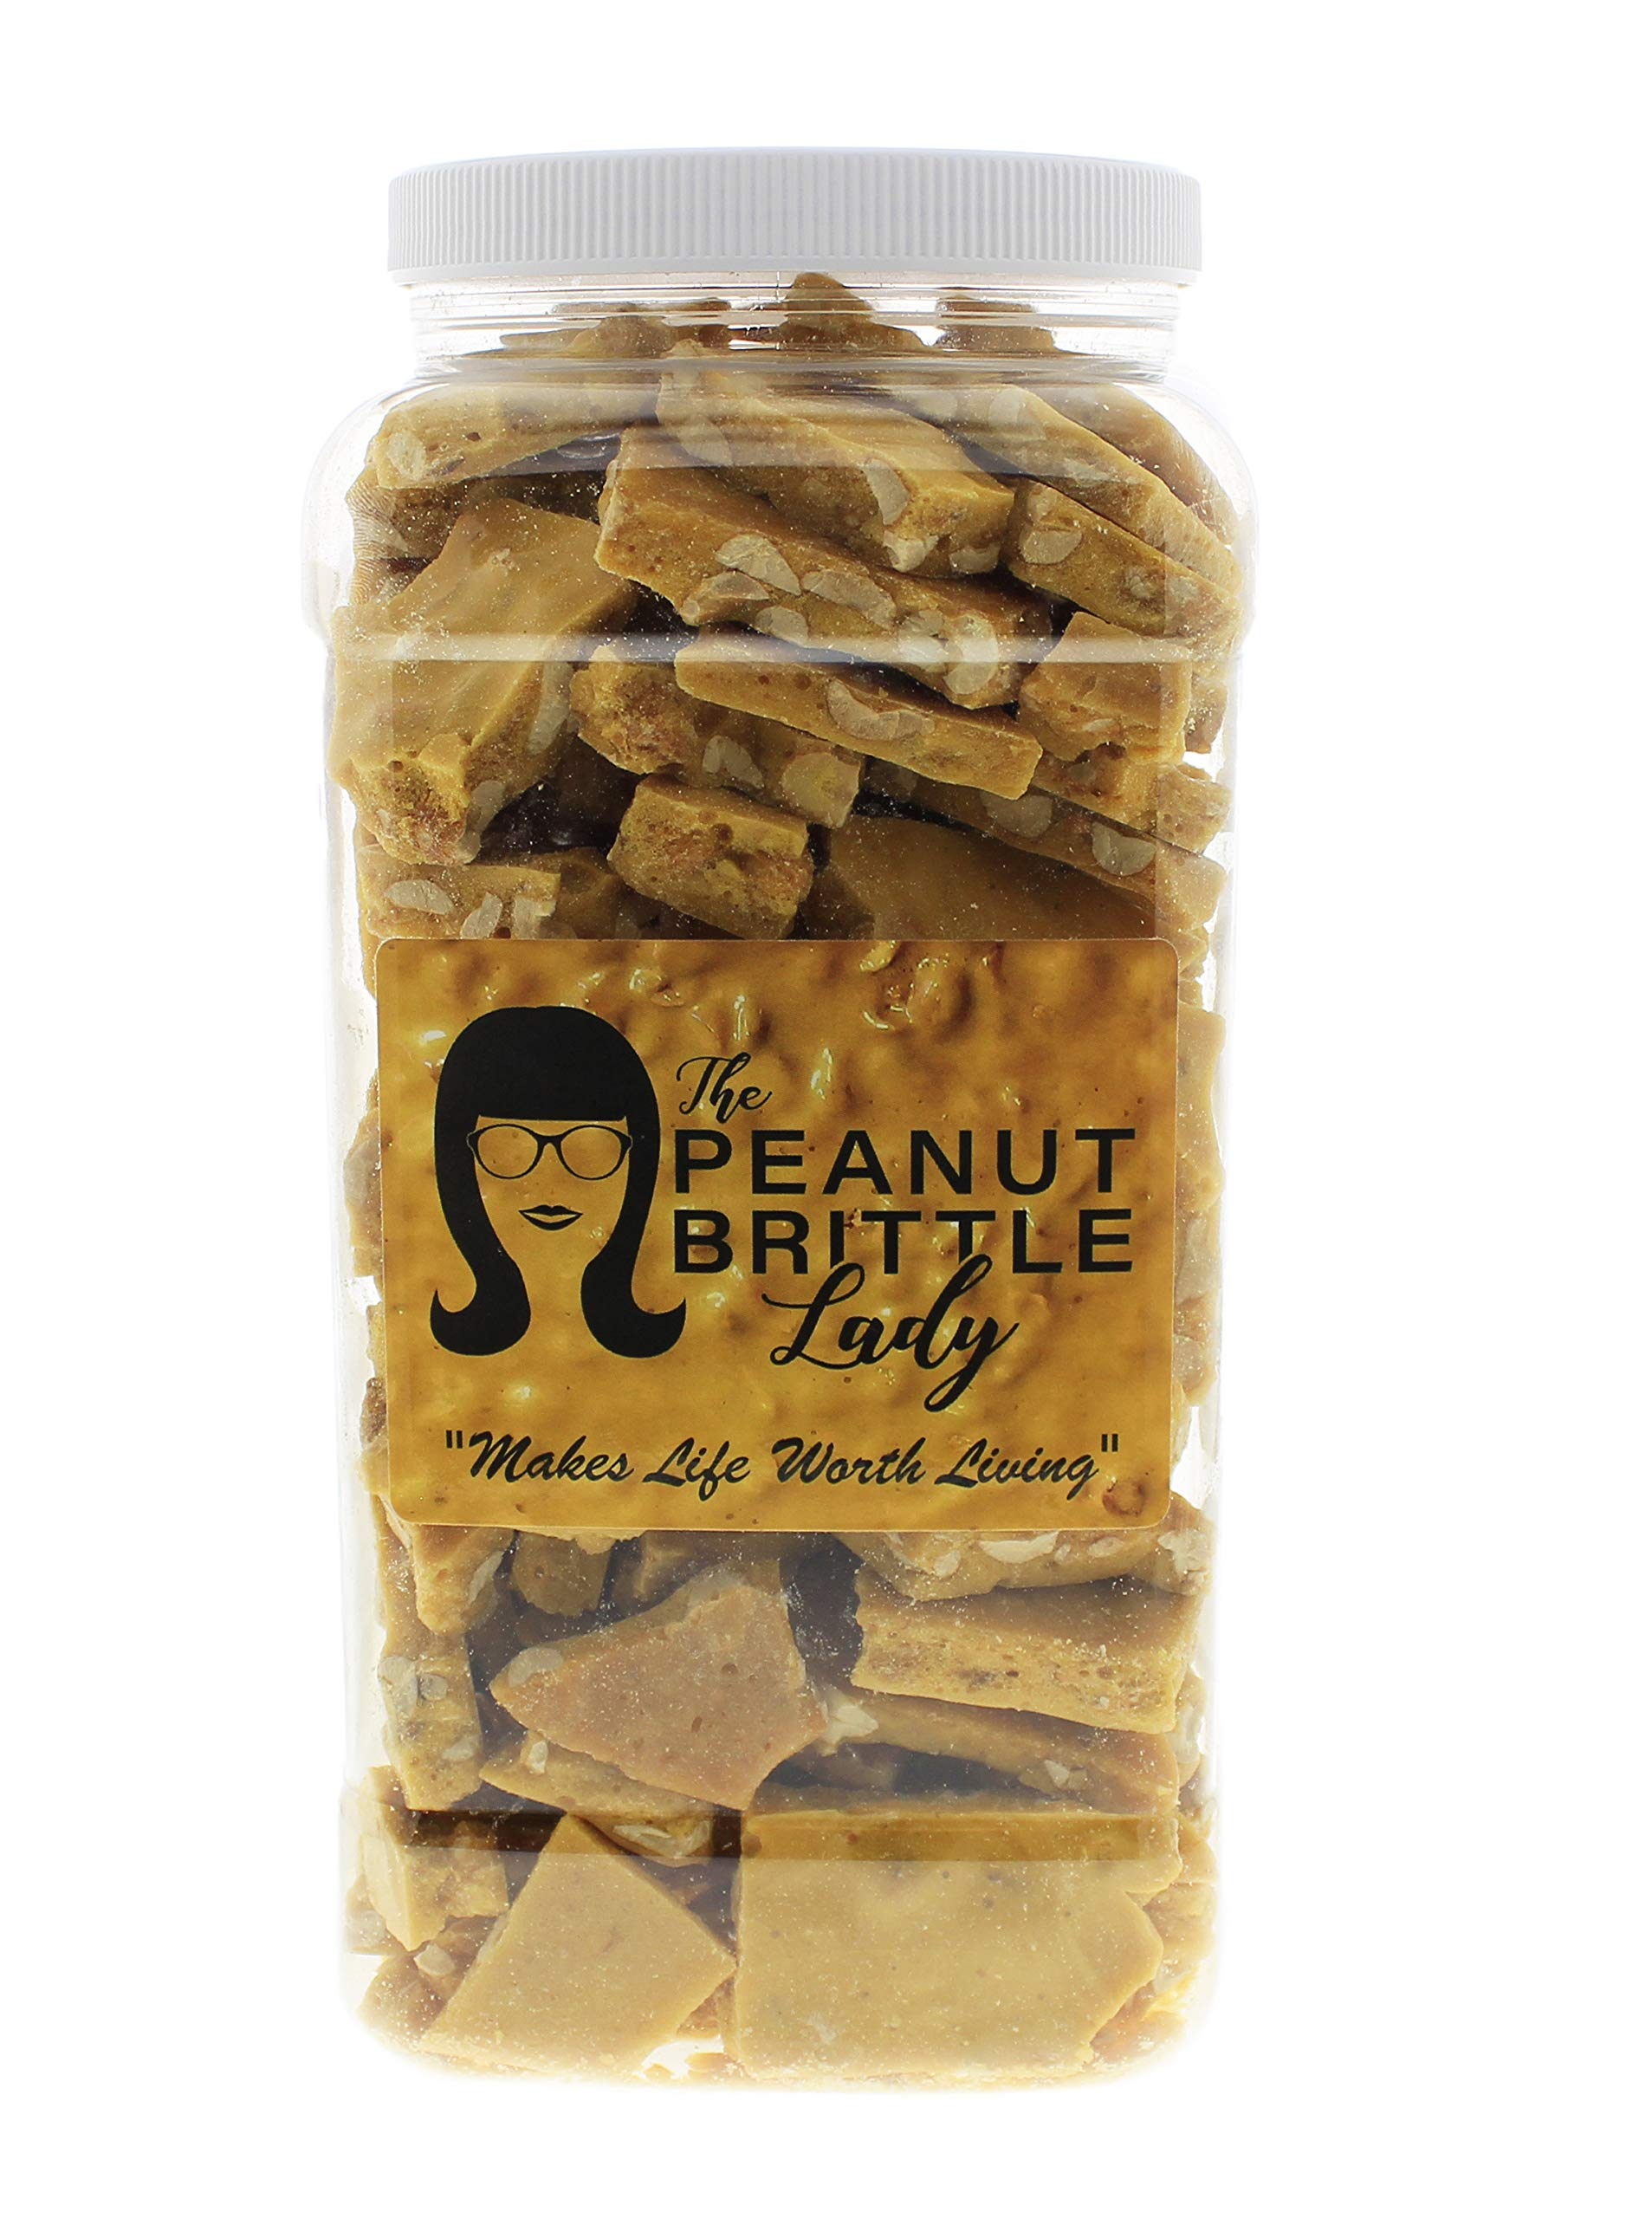 Top Shelf Handmade Gourmet Peanut Brittle Candy, Small Batch, Homemade; Size: OMG! (Oh My Gallon) by Peanut Brittle Lady